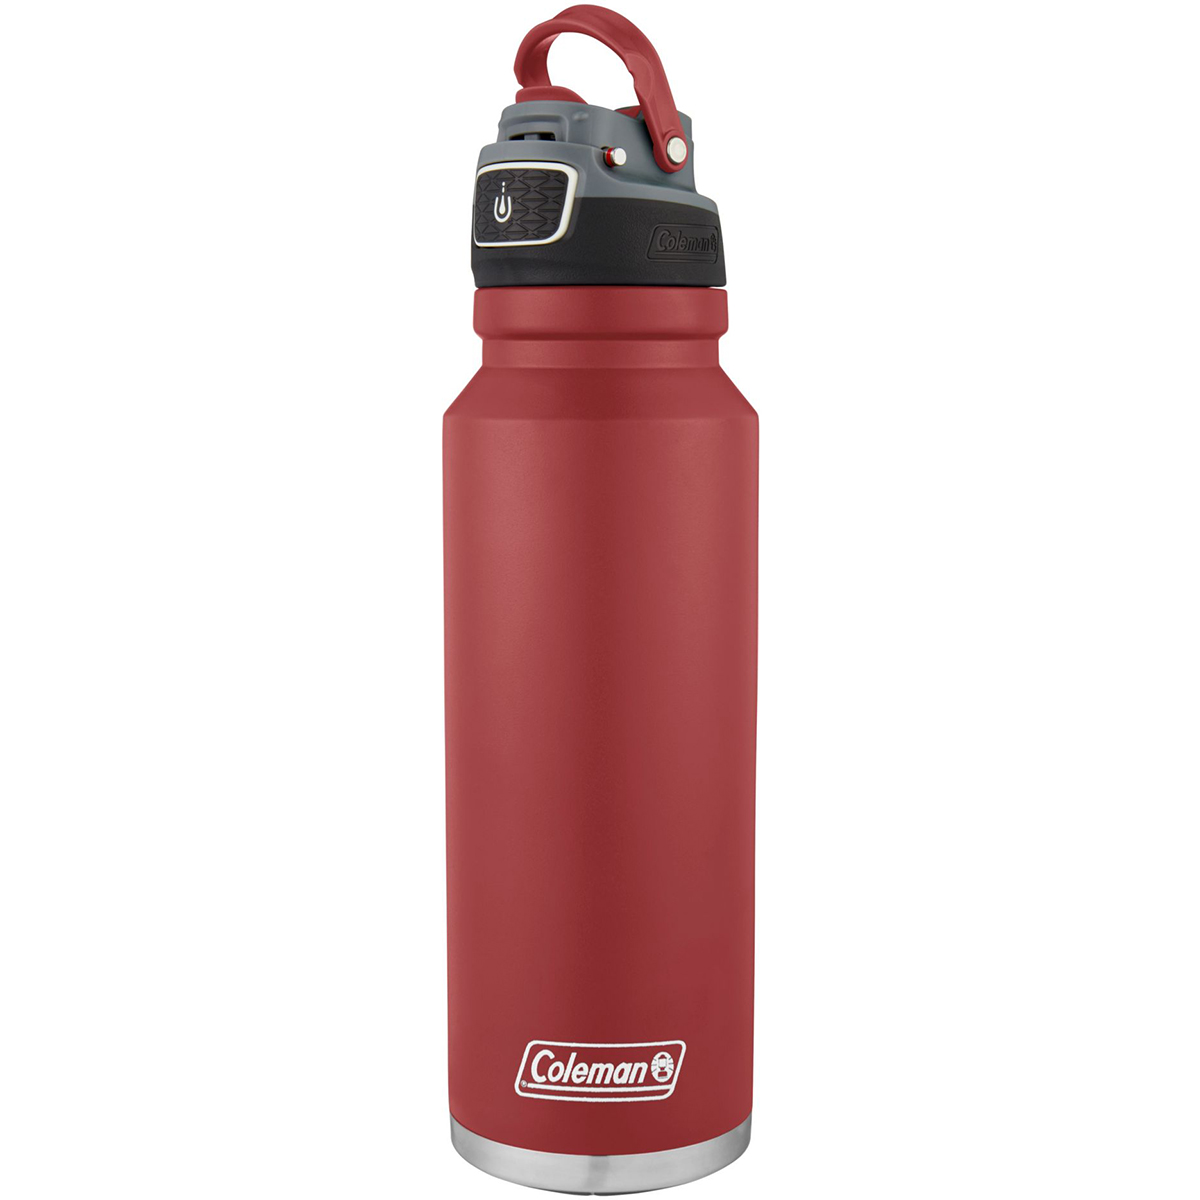 thumbnail 13 - Coleman 40 oz. Free Flow Autoseal Insulated Stainless Steel Water Bottle